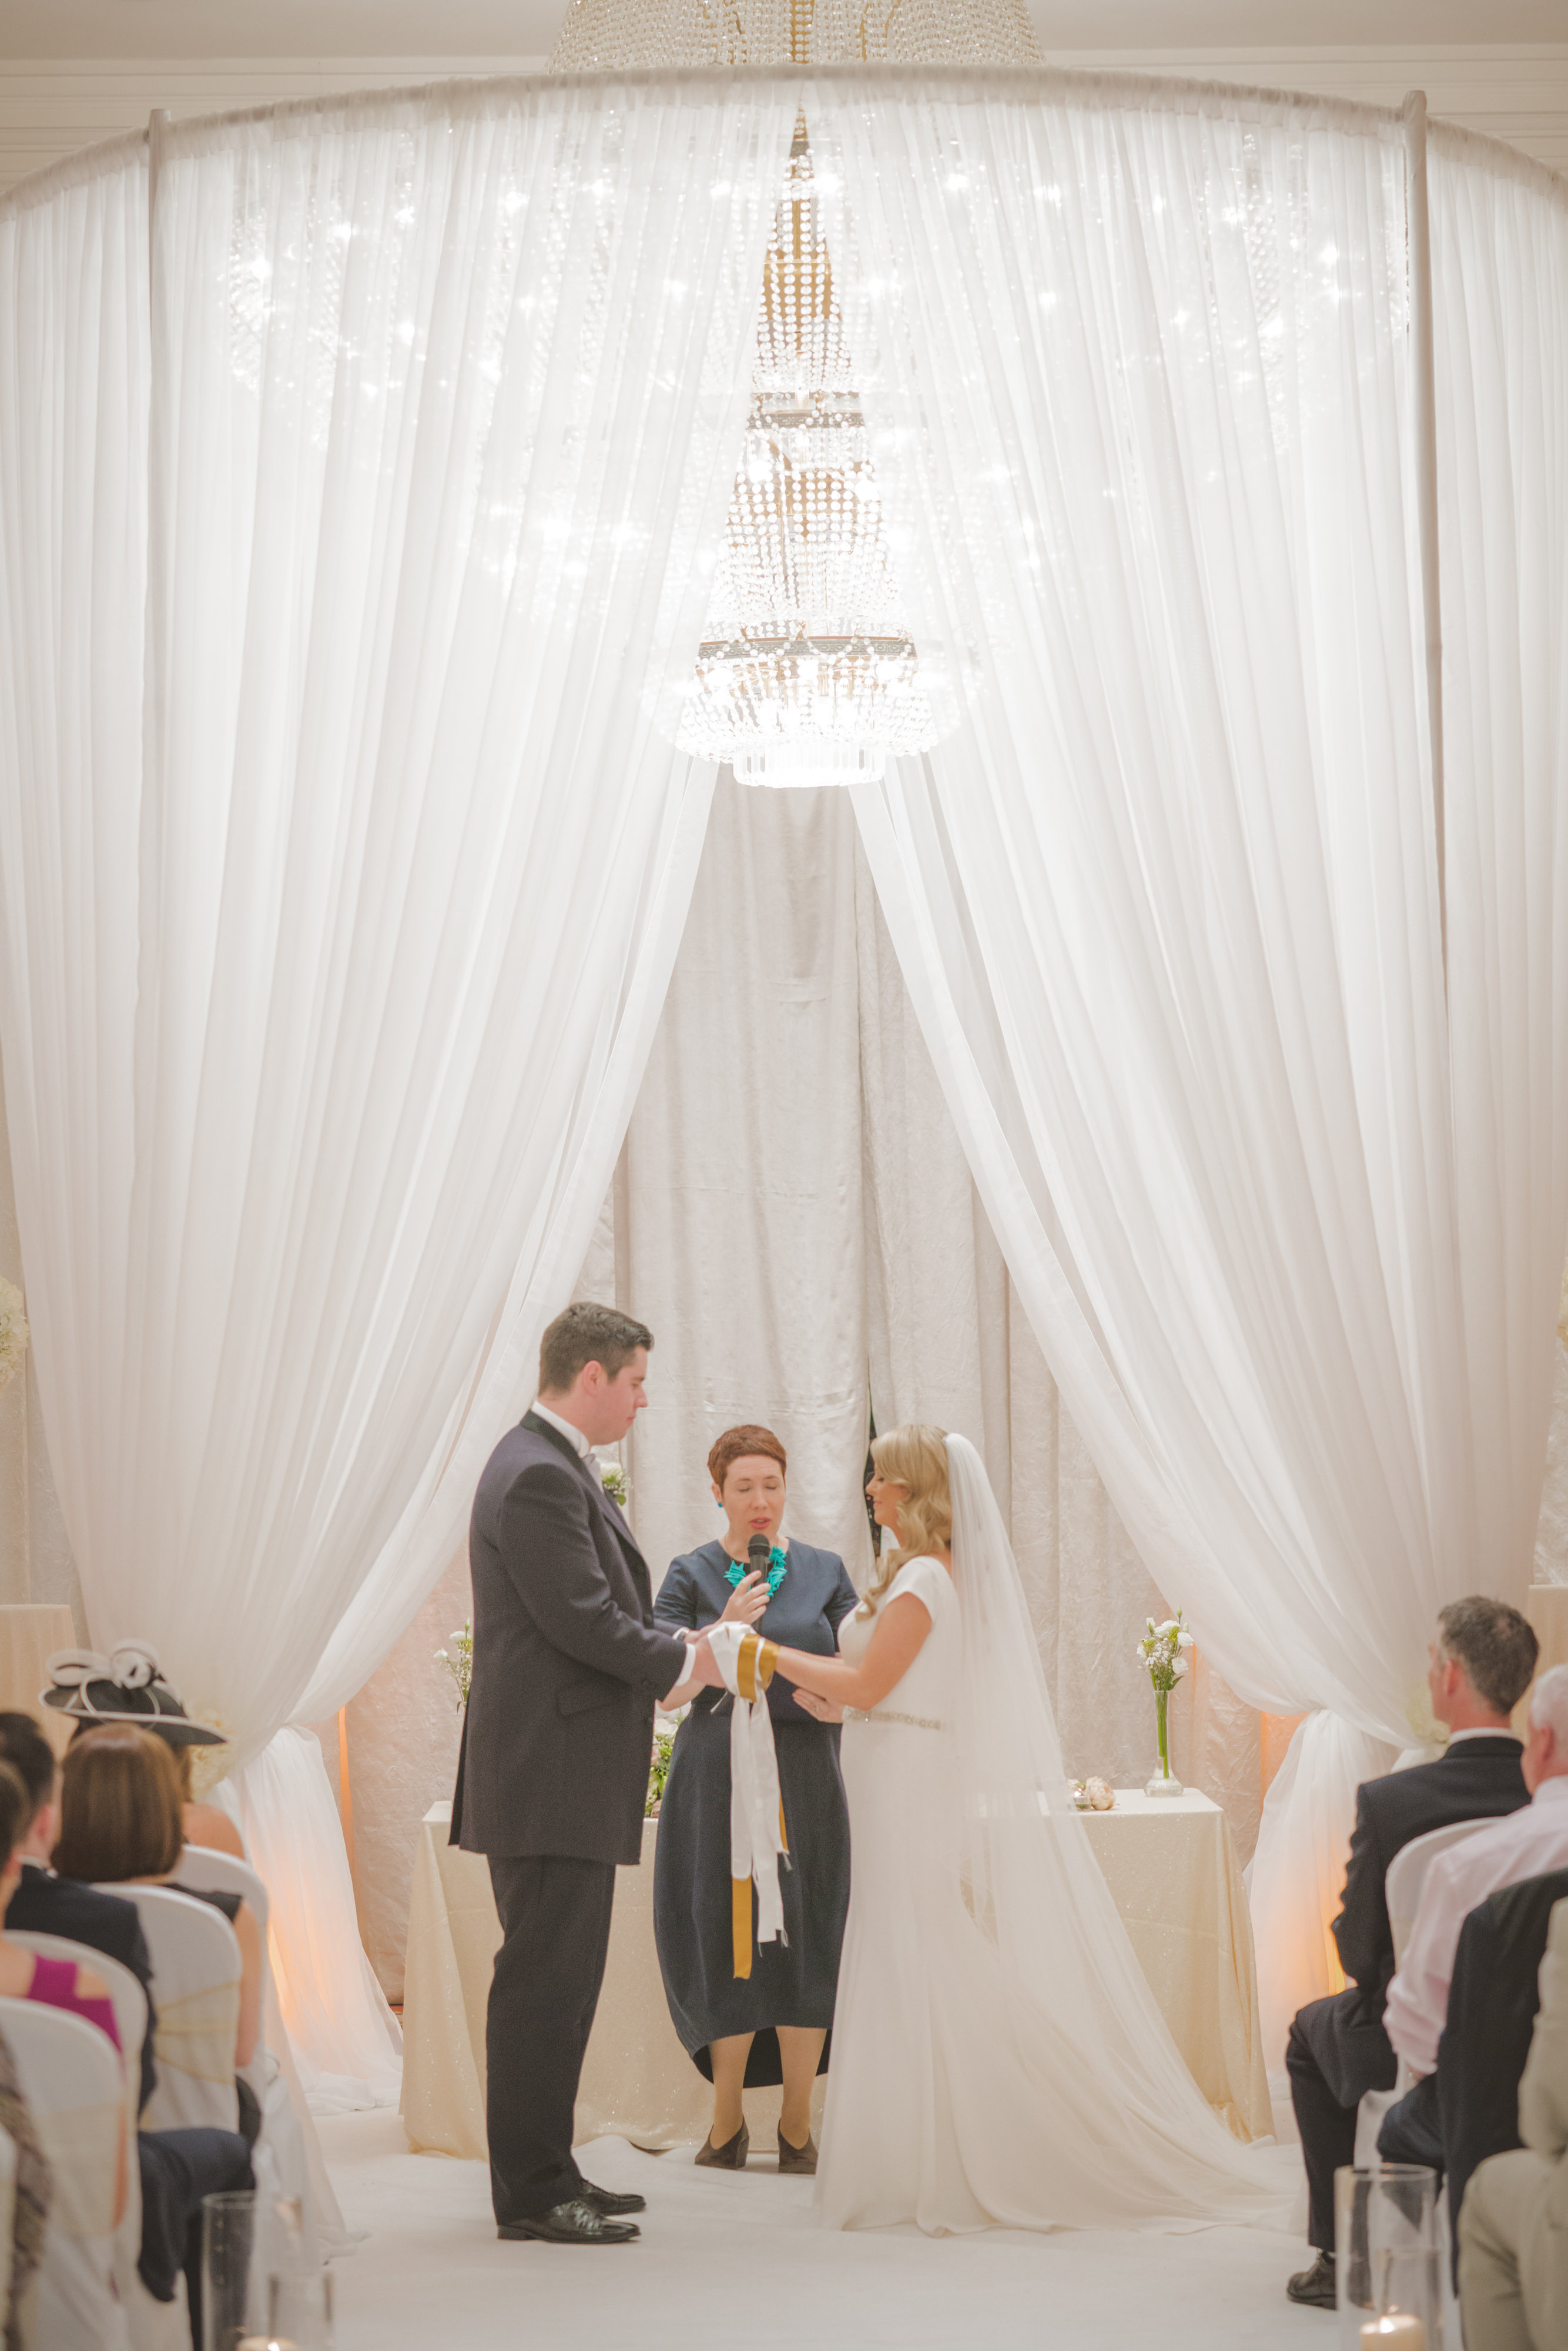 A Hollywood Glam Wedding at Knightsbrook by Paul Duane Photography